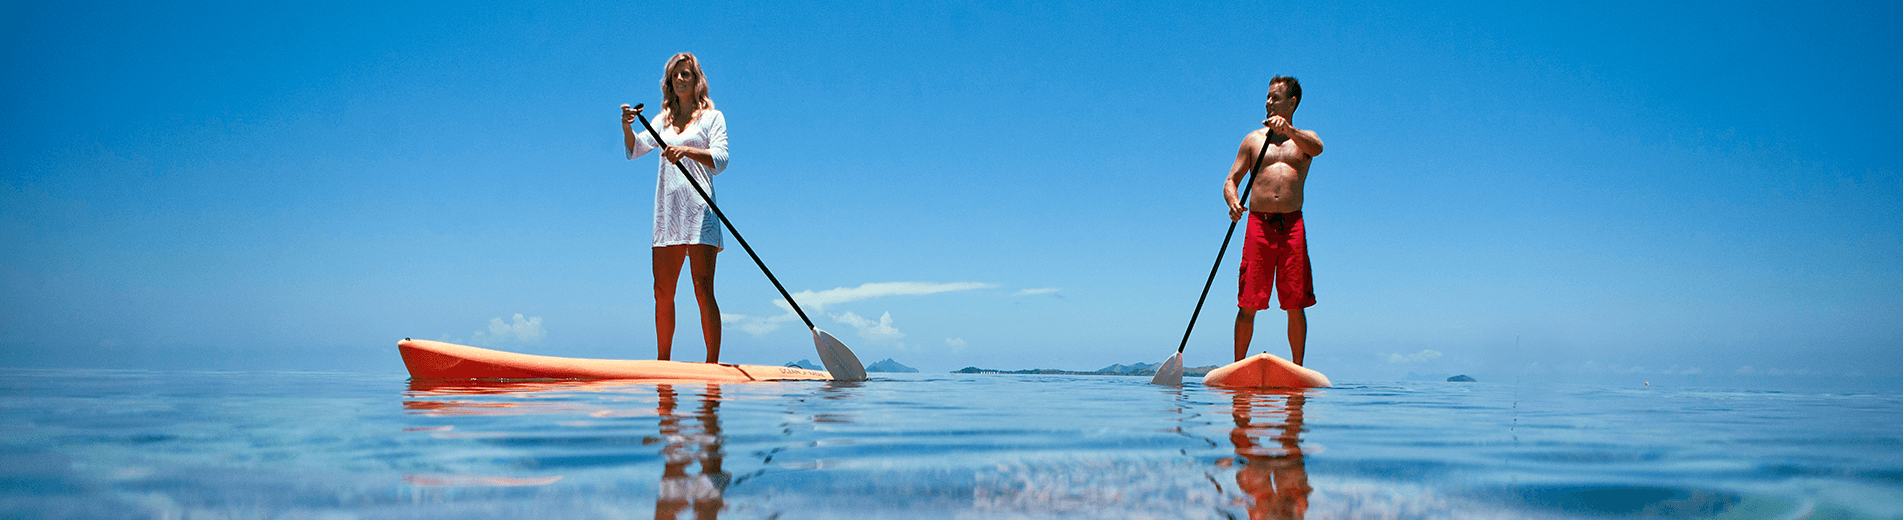 There are hundreds of bays, coves and lagoons to explore in Fiji and a standup paddleboard is an ideal way to discover them.